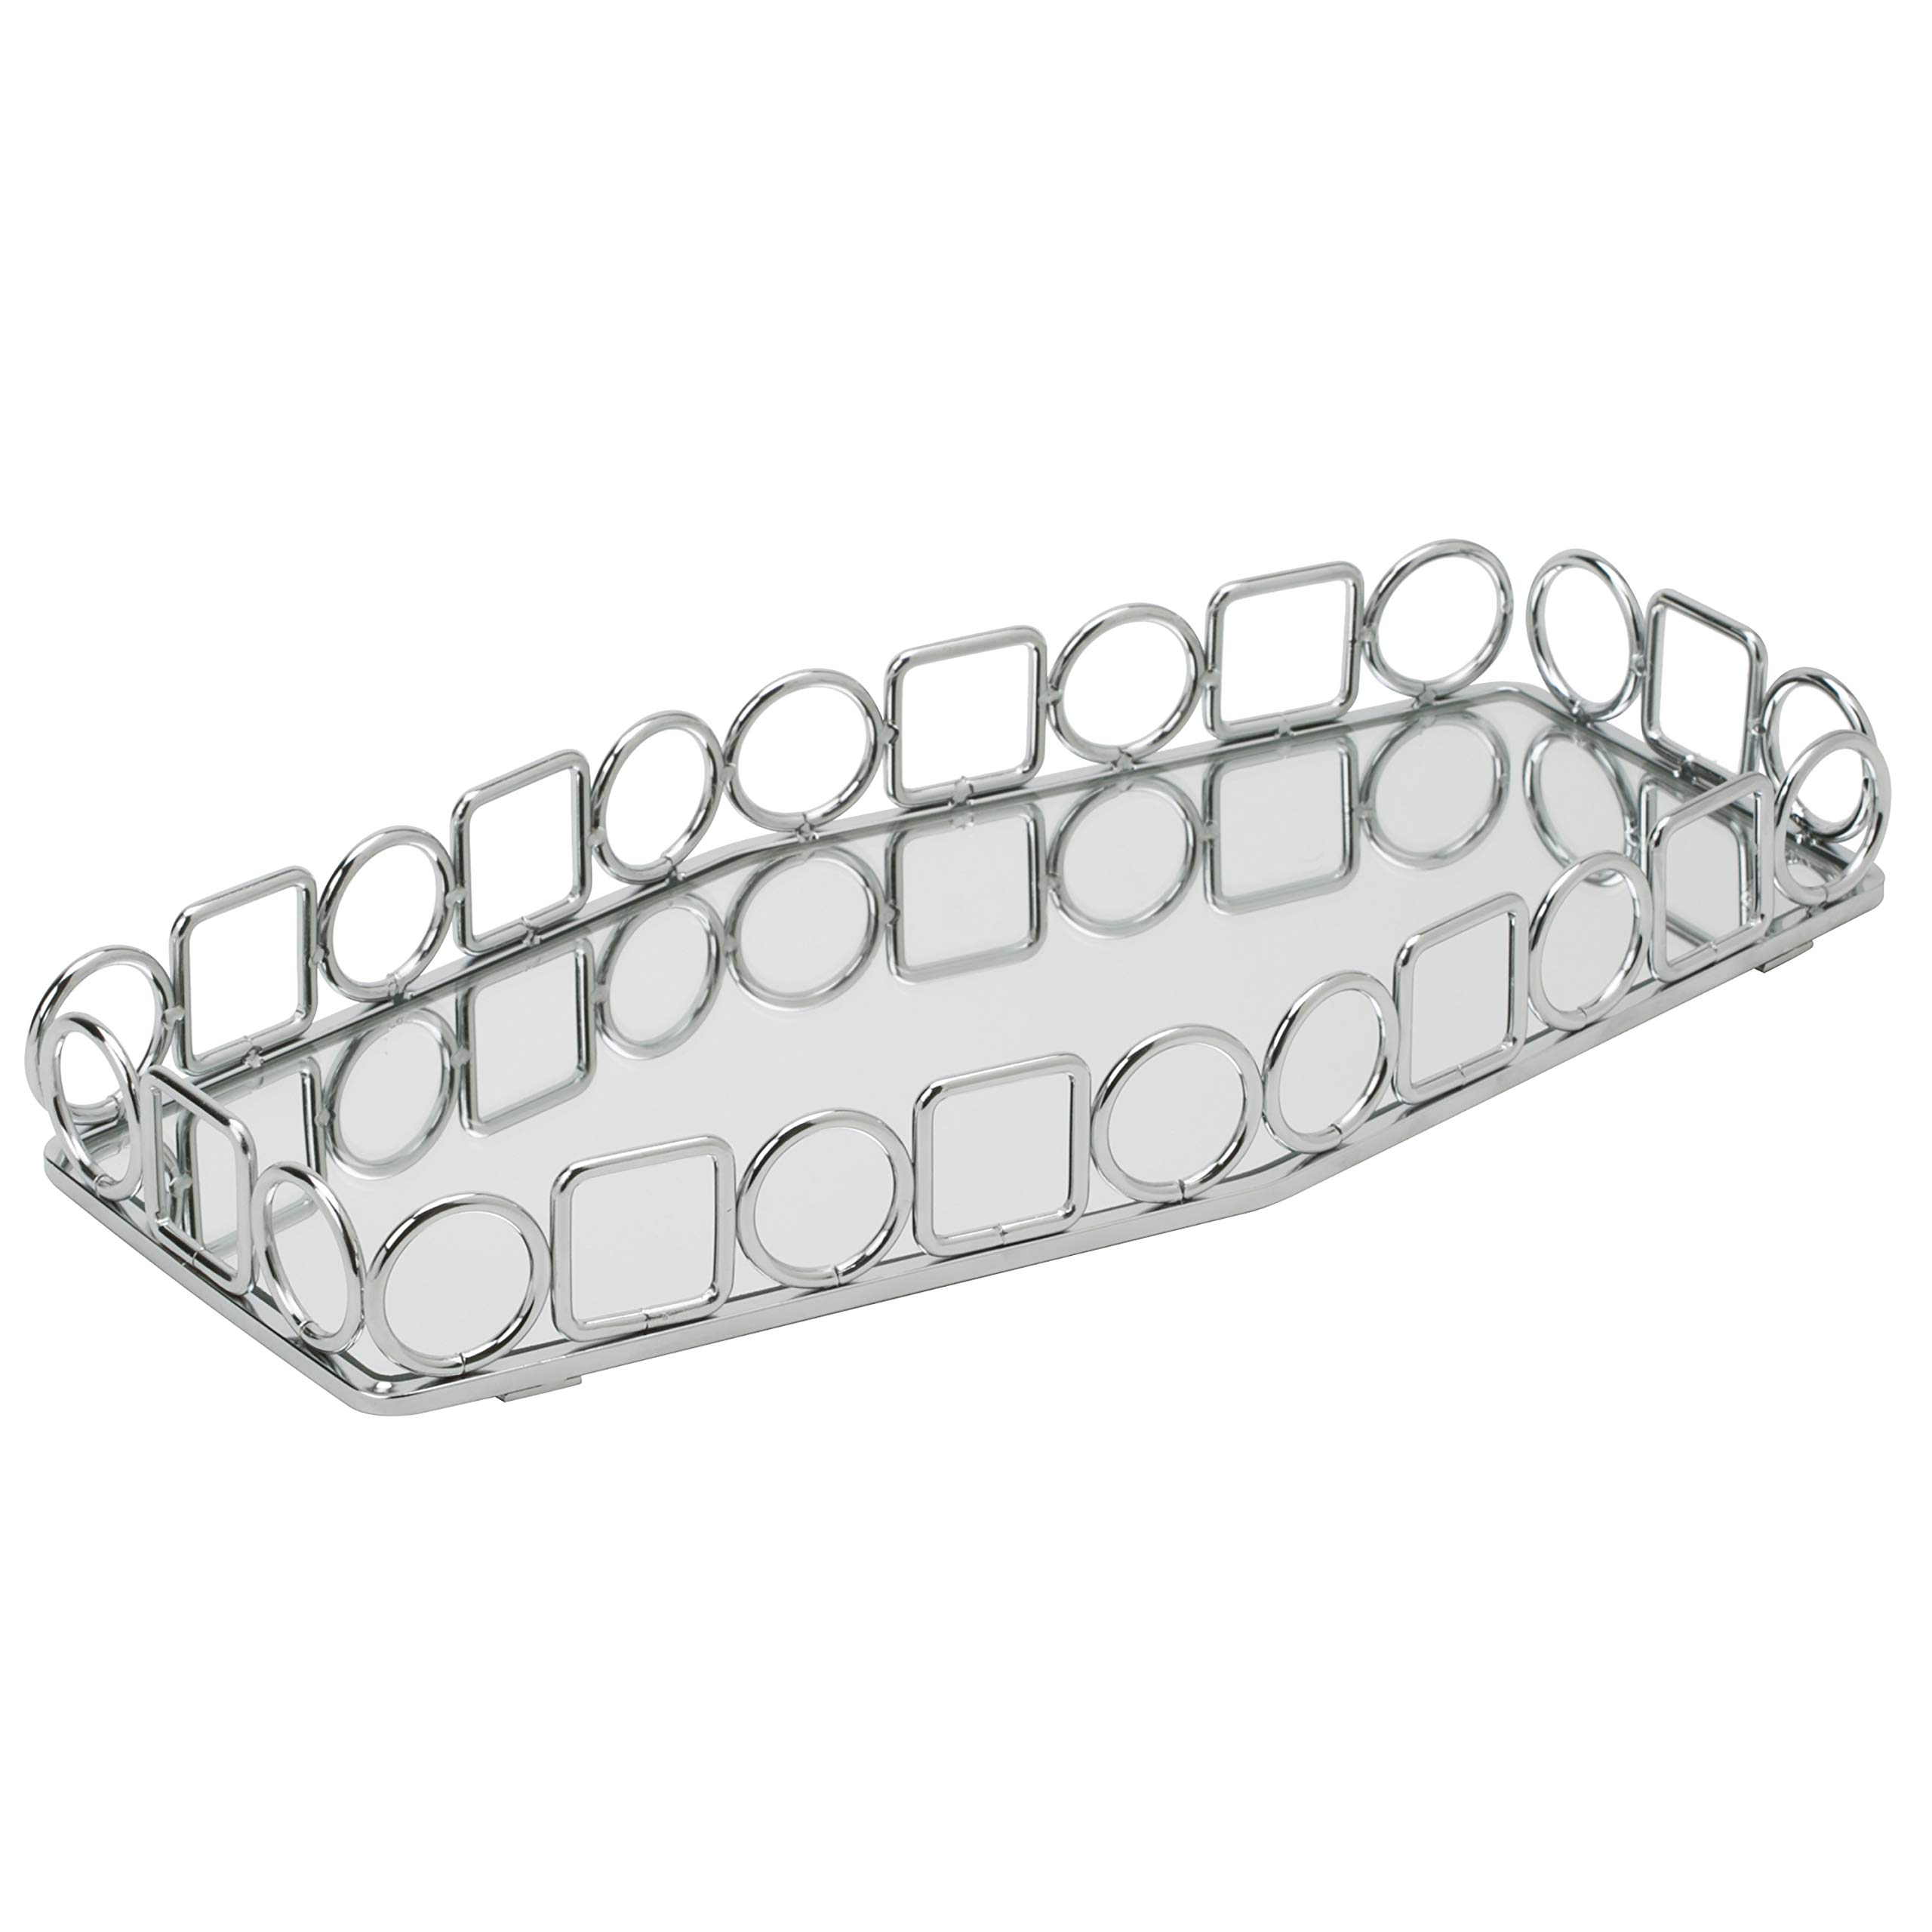 Home Details Mirrored Vanity Tray for Dresser, Perfume, Desk, Cosmetic & Jewelry Organizer, Decorative, Chrome by Home Details